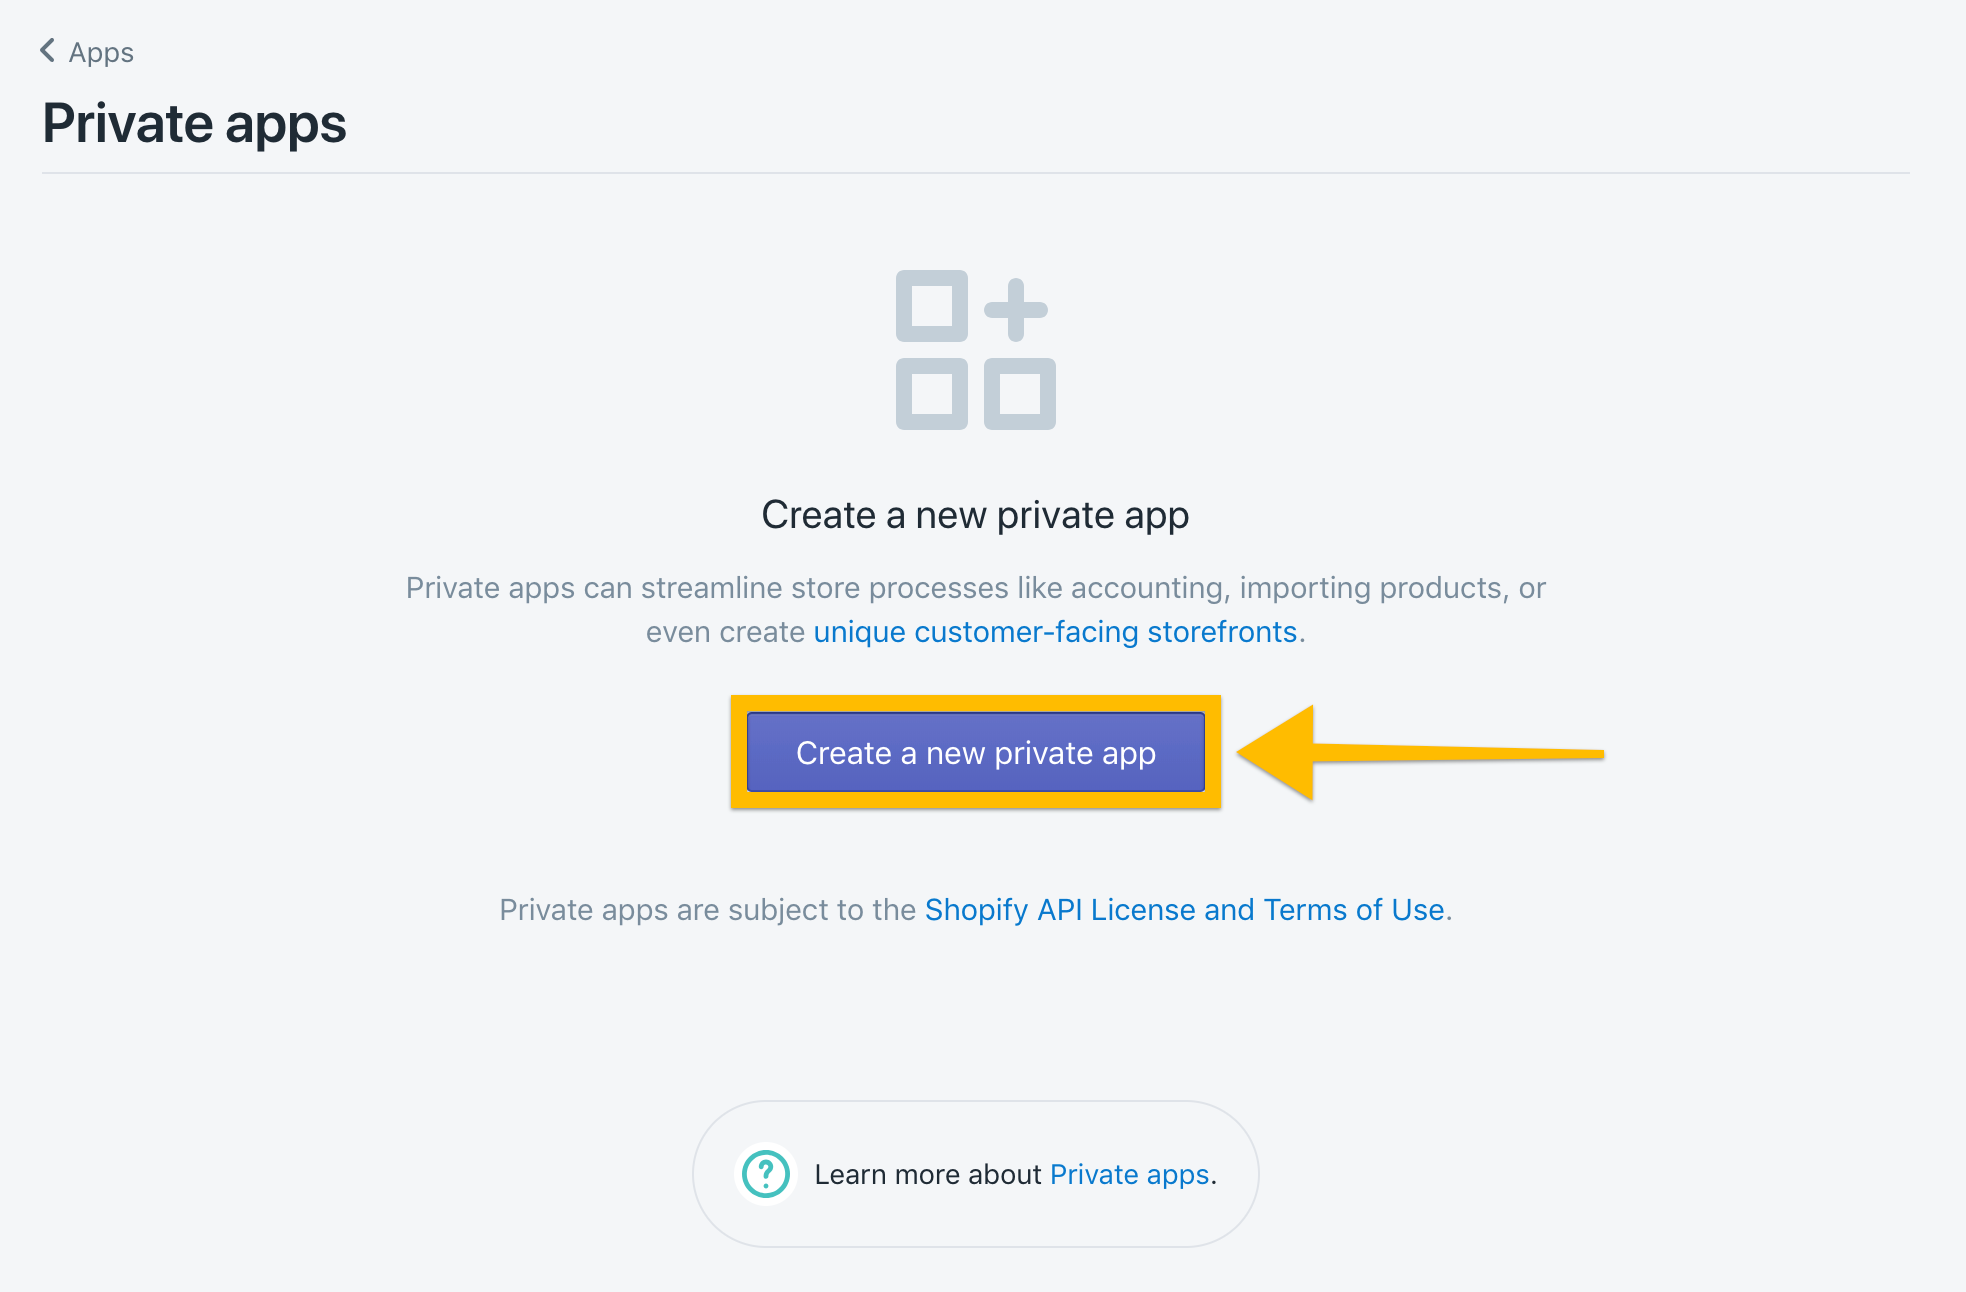 How to Connect to Shopify with the Private App Method